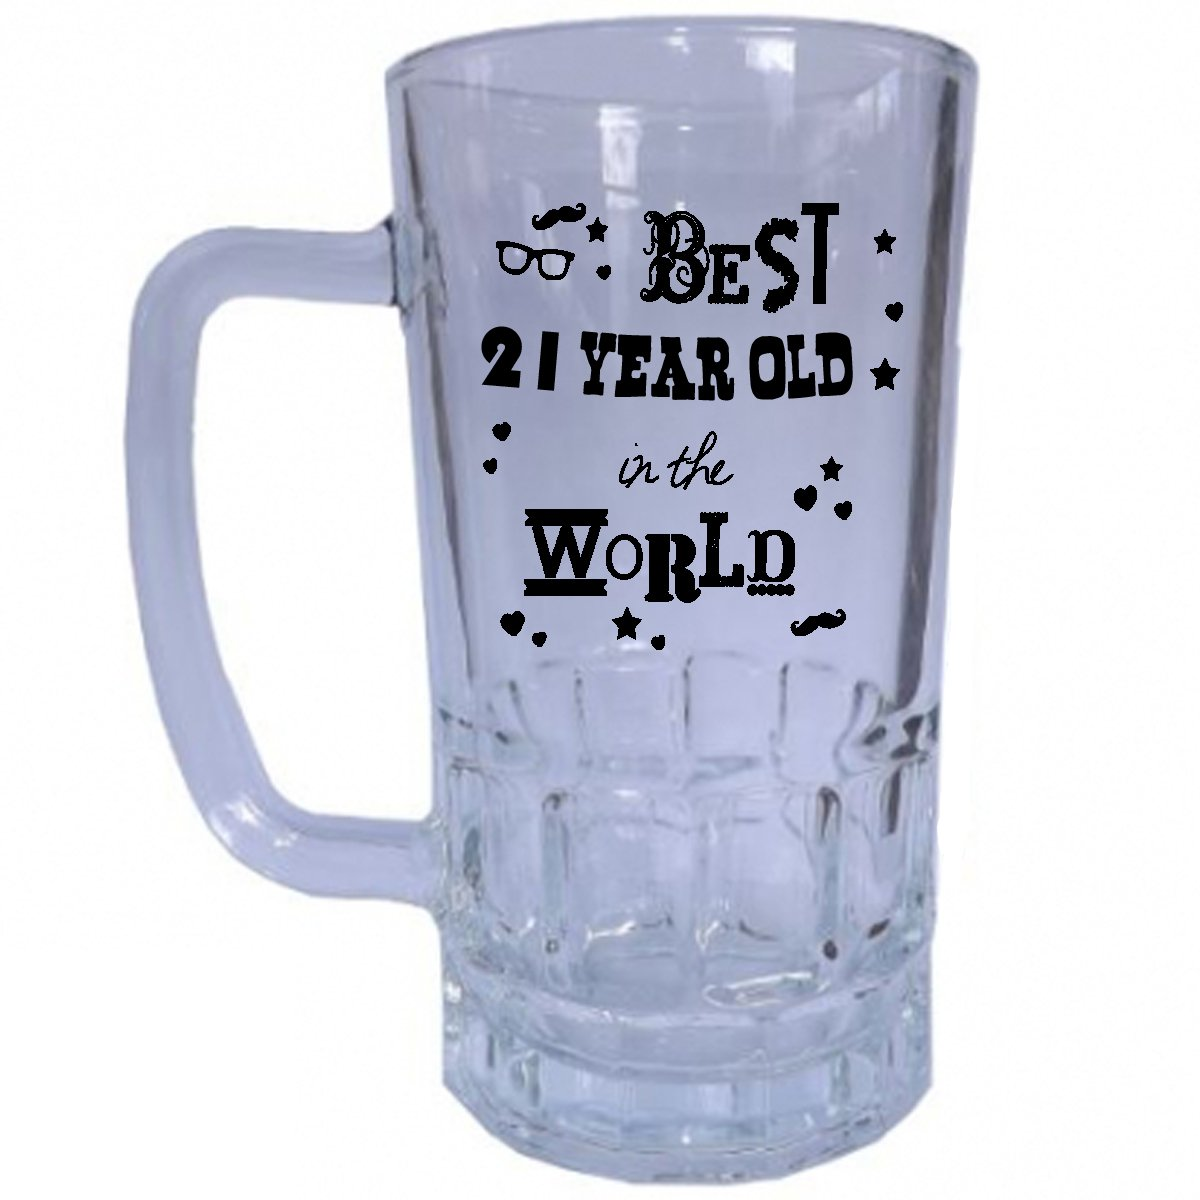 Best 21 Year Old In The World Beer Stein Tankard Mug Glass Unique And Funny 21st Birthday Gift Perfect Present Idea For Him Amazoncouk Kitchen